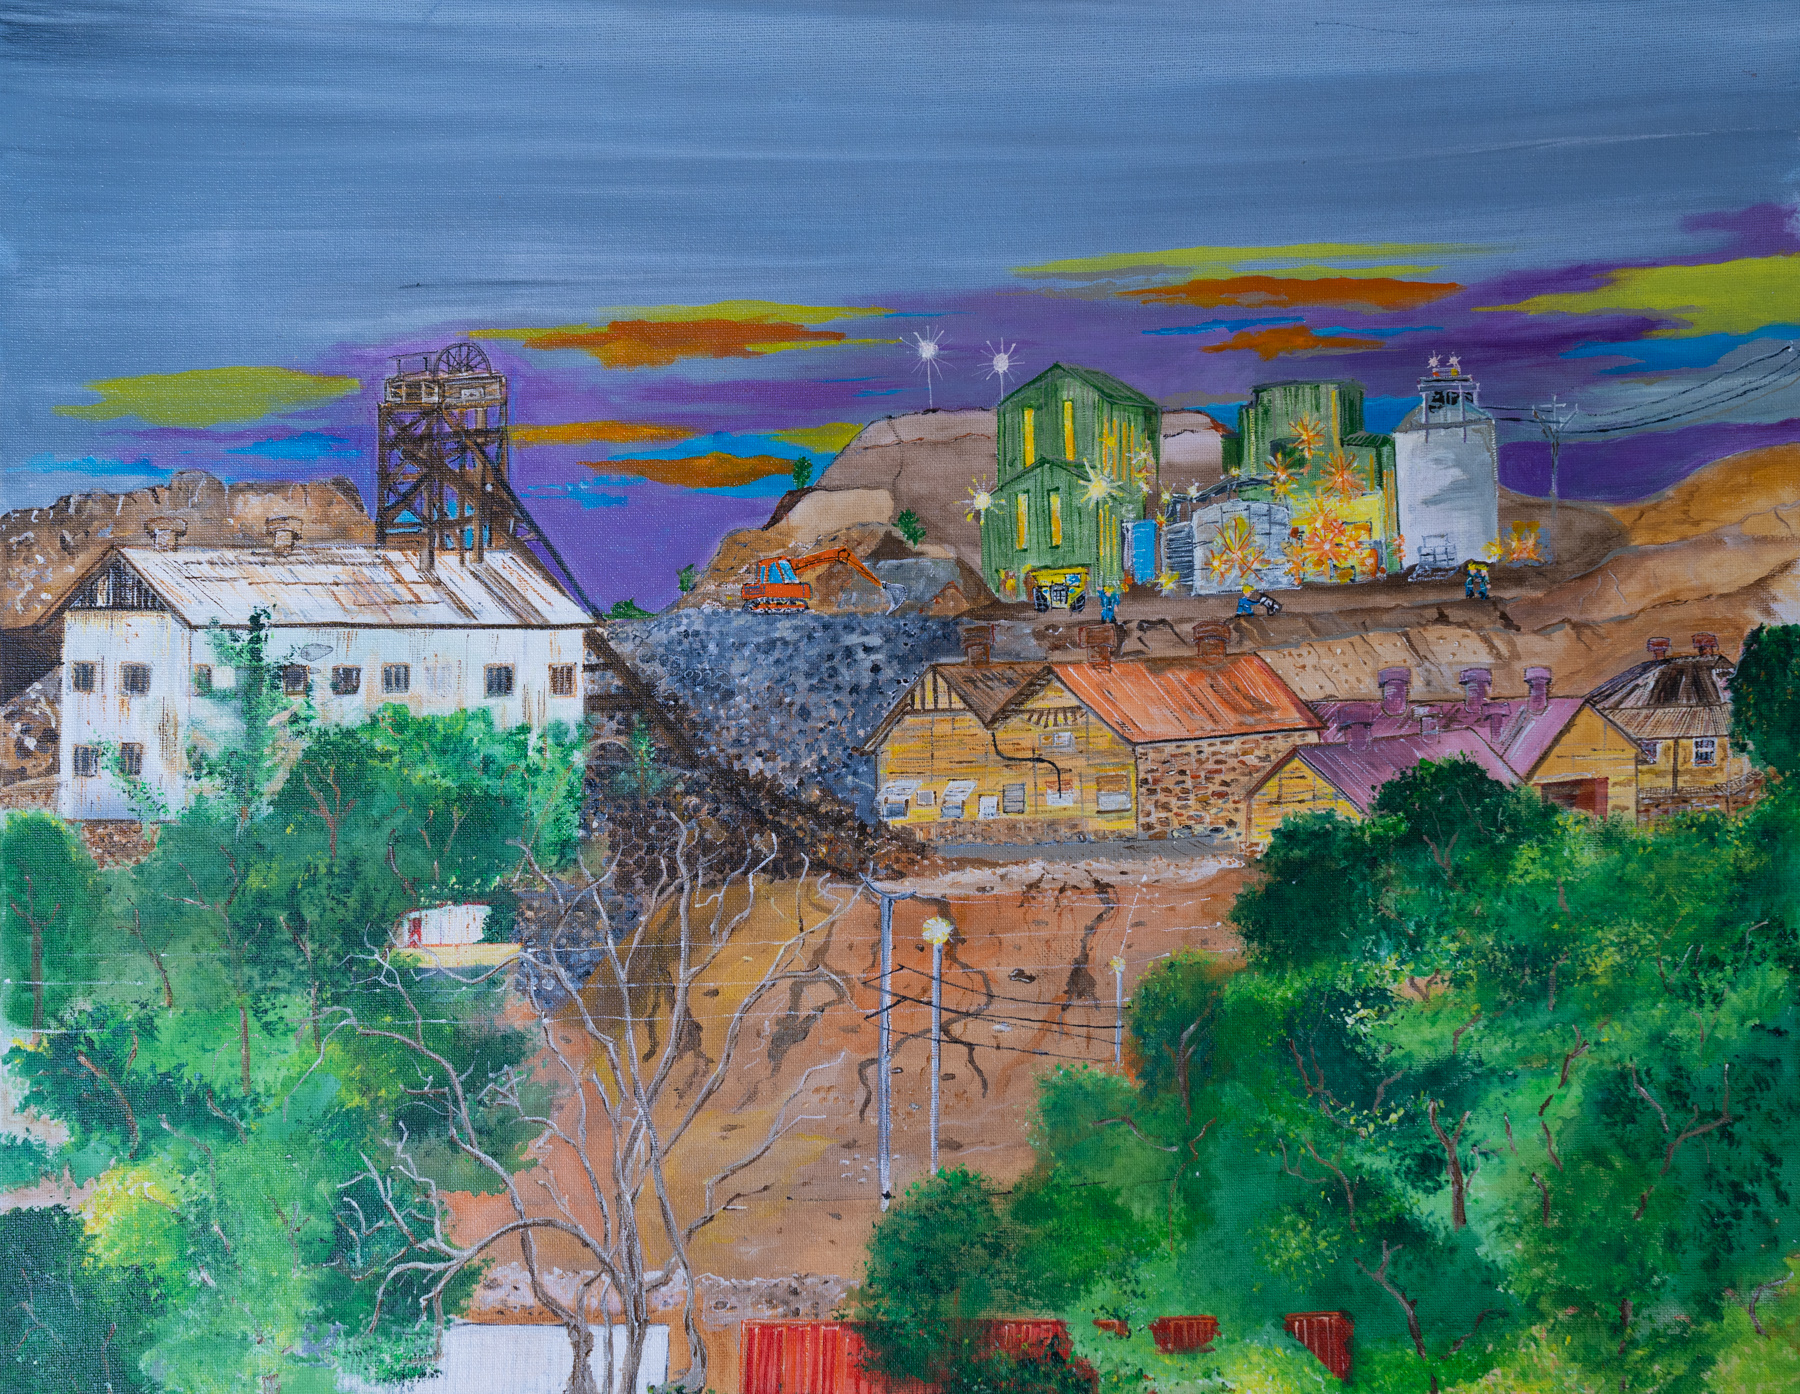 Painting of the mine site at Broken Hill, under a purple sky